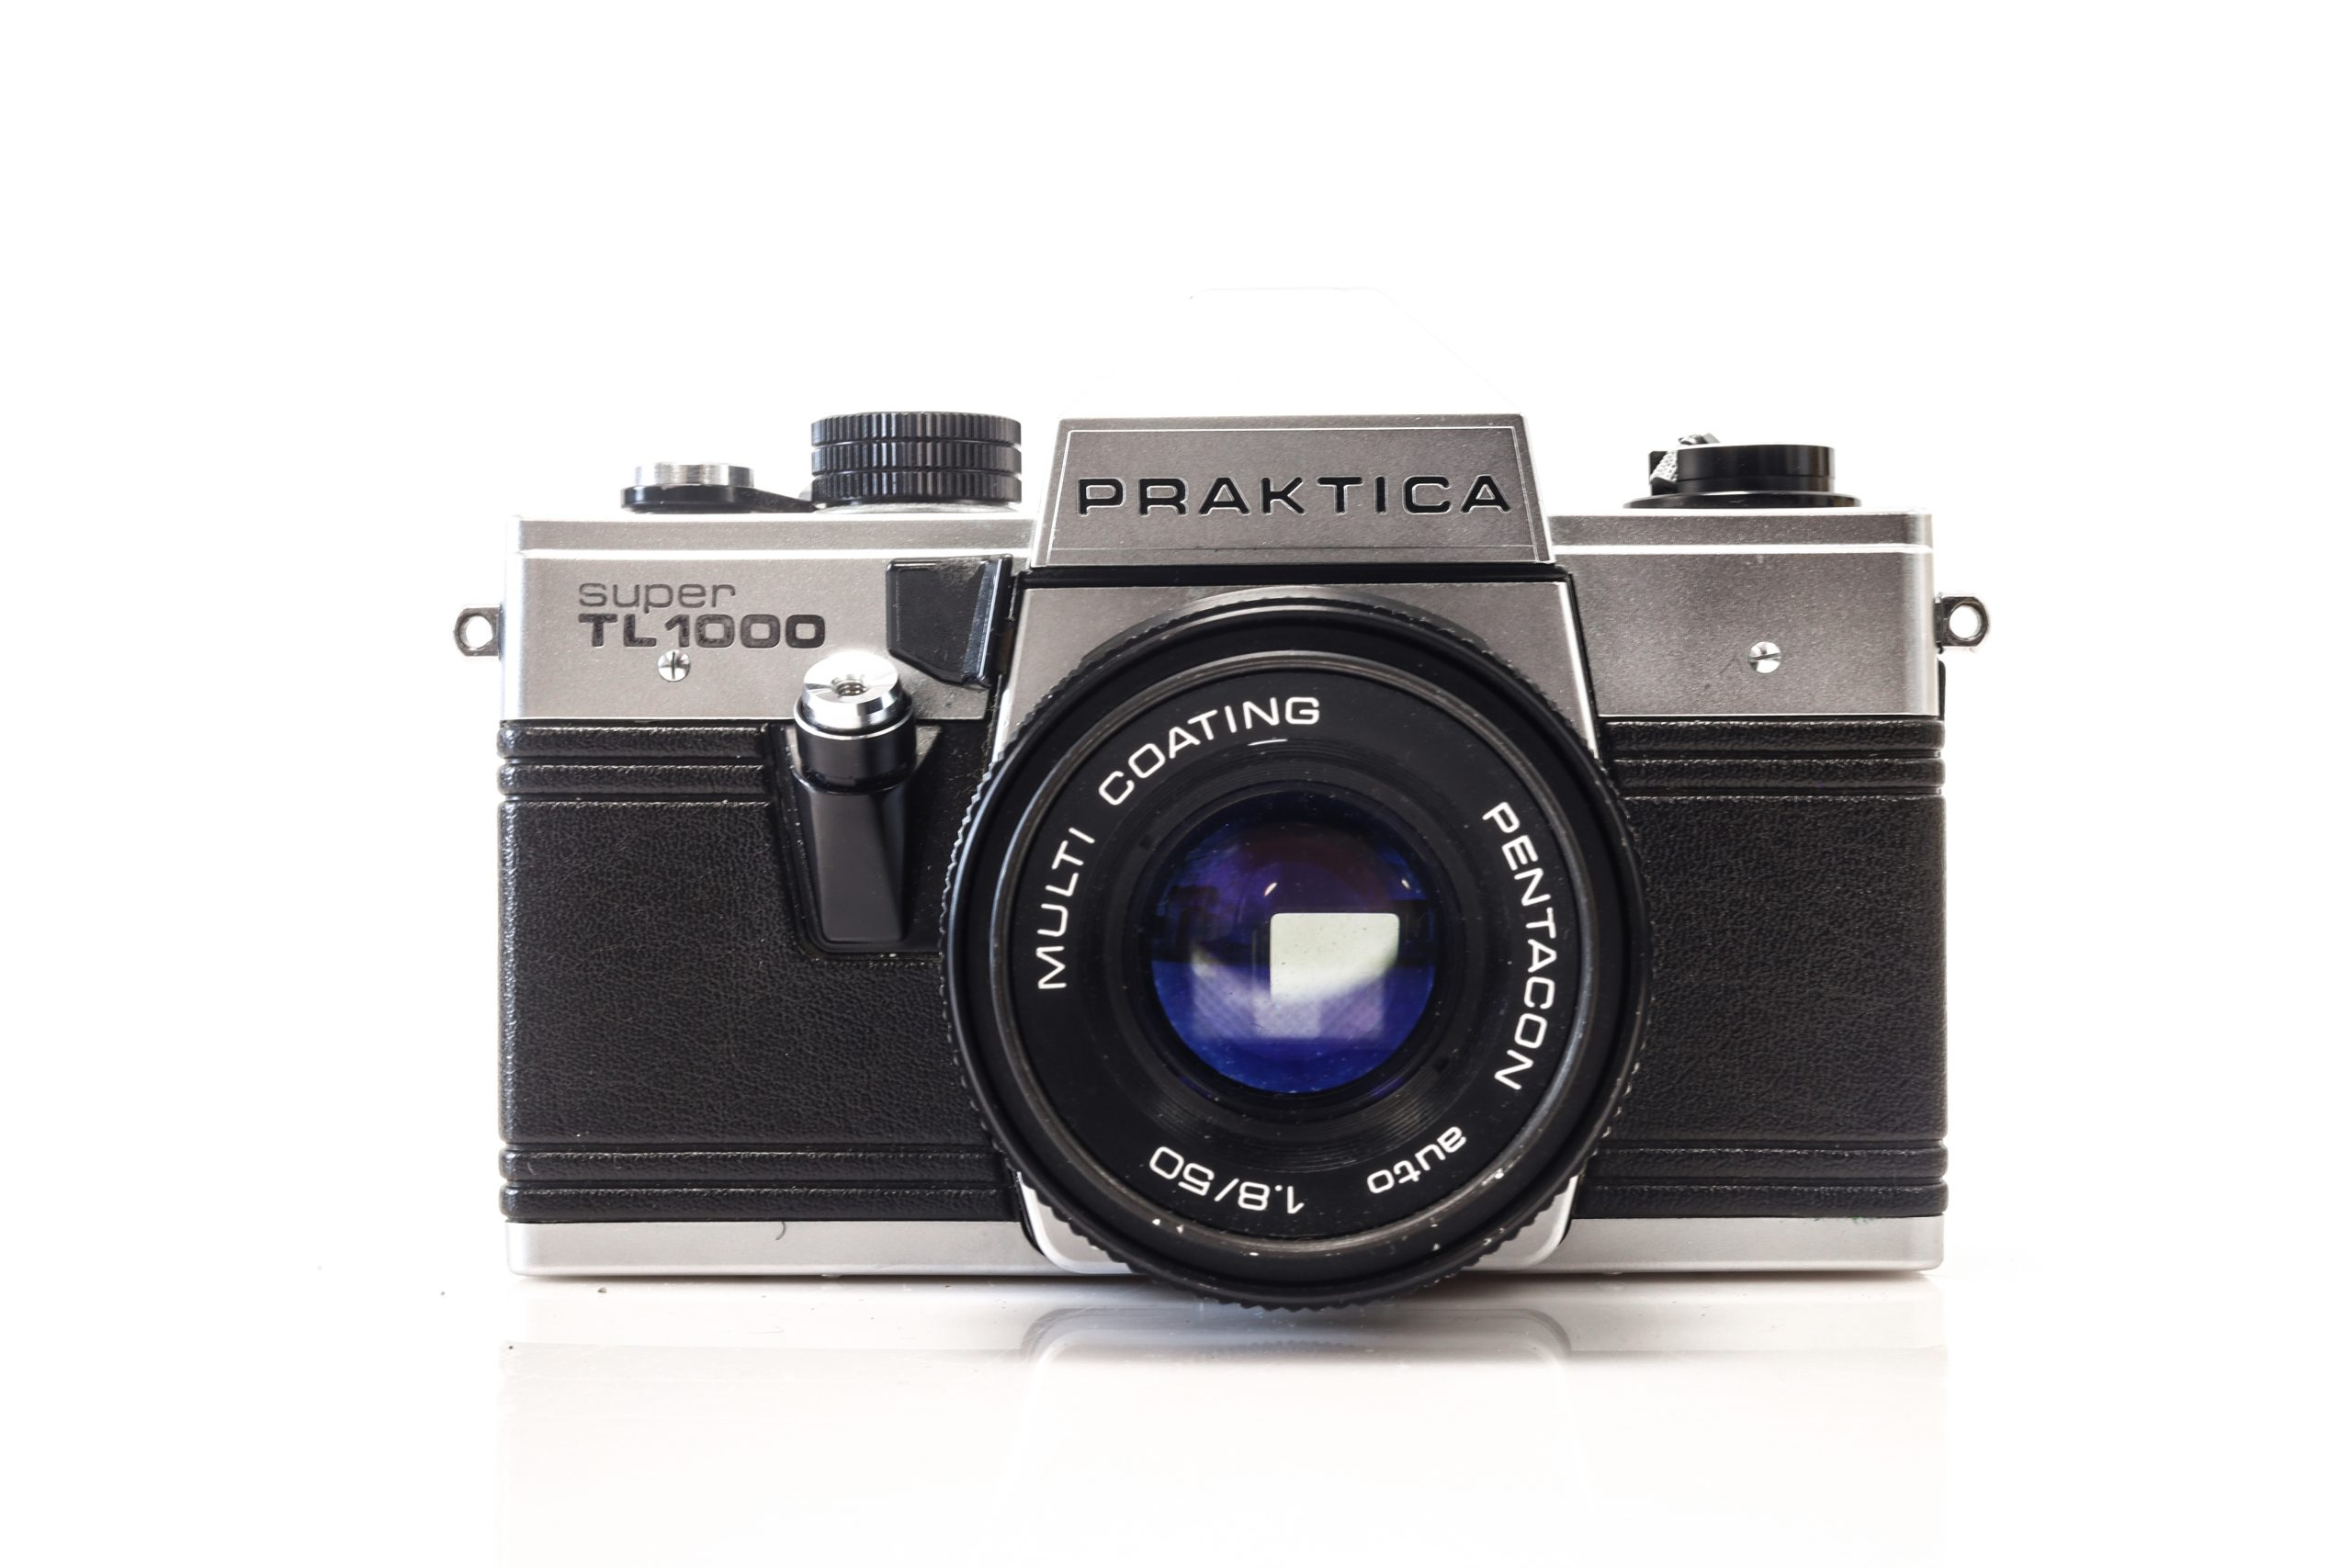 Beautiful Praktica Super TL 35mm Film Camera with 50mm F1.8 Lens